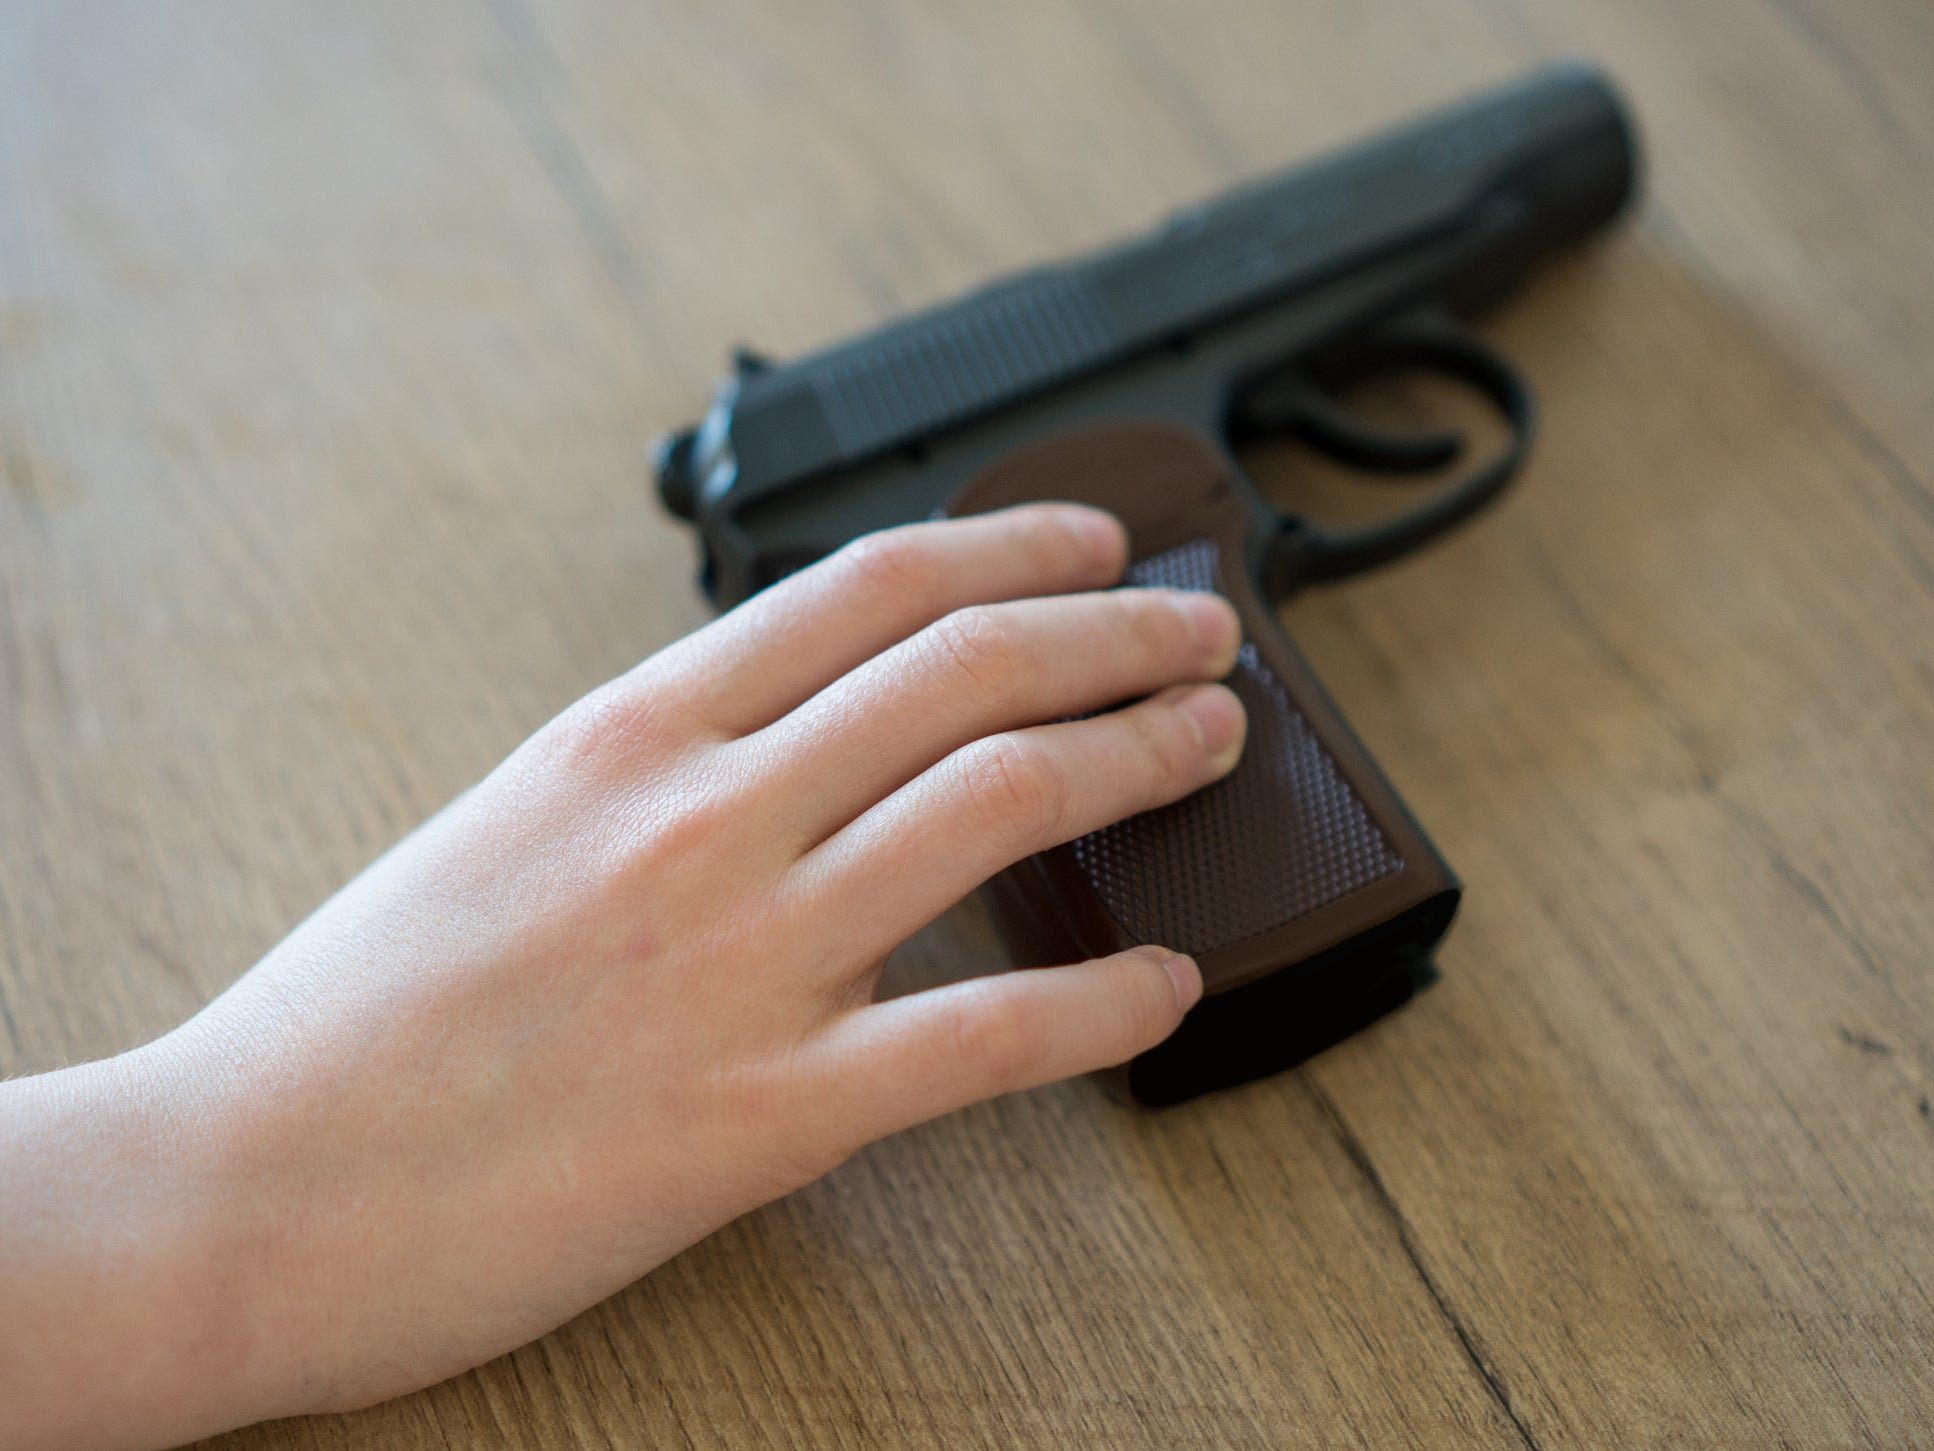 Toddler shoots four-year-old brother with father's gun in Texas